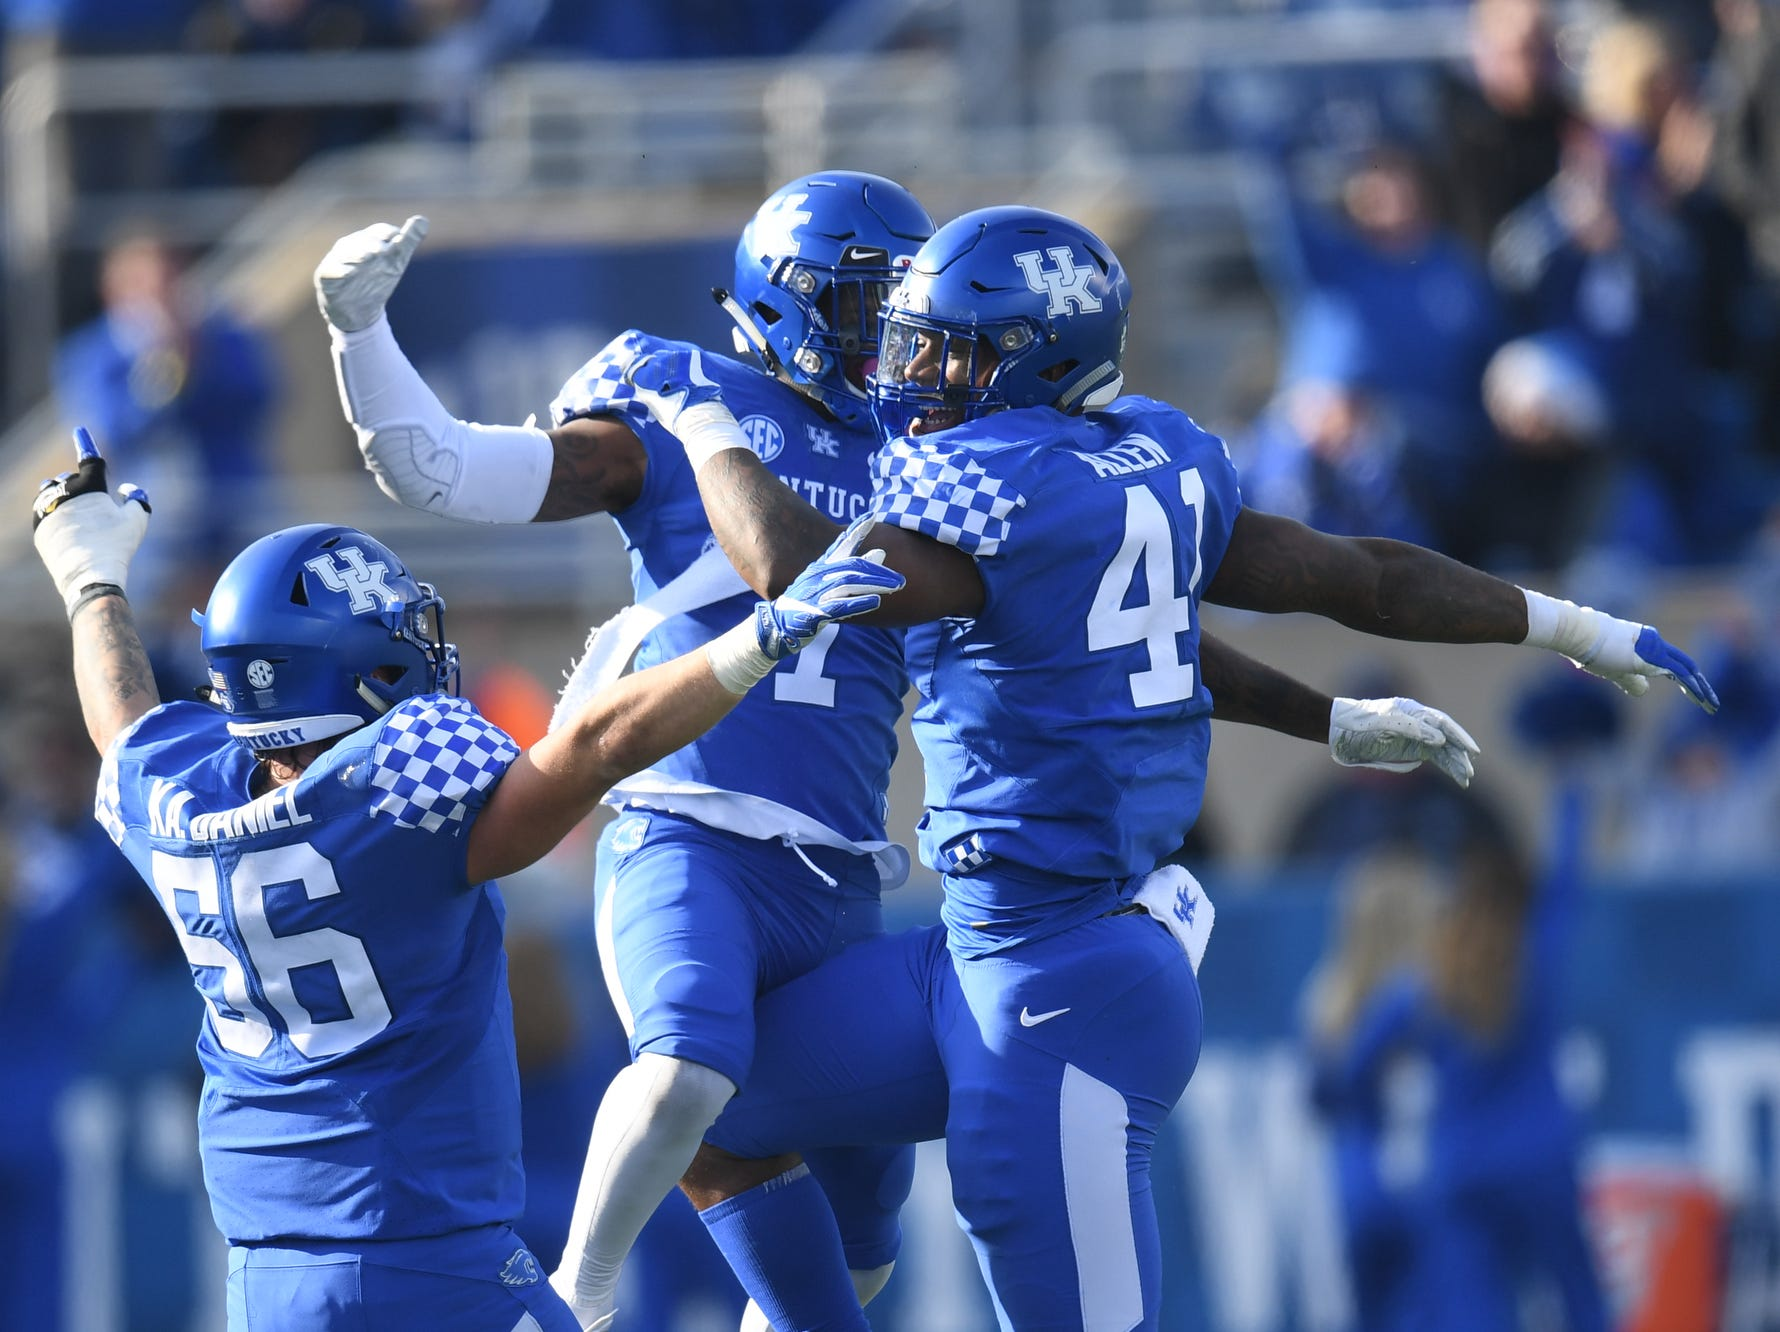 UK players Kash Daniel, Mike Edwards, and Josh Allen celebrate during the University of Kentucky football game against Middle Tennessee at Kroger Field in Lexington, Kentucky on Saturday, November 17, 2018.